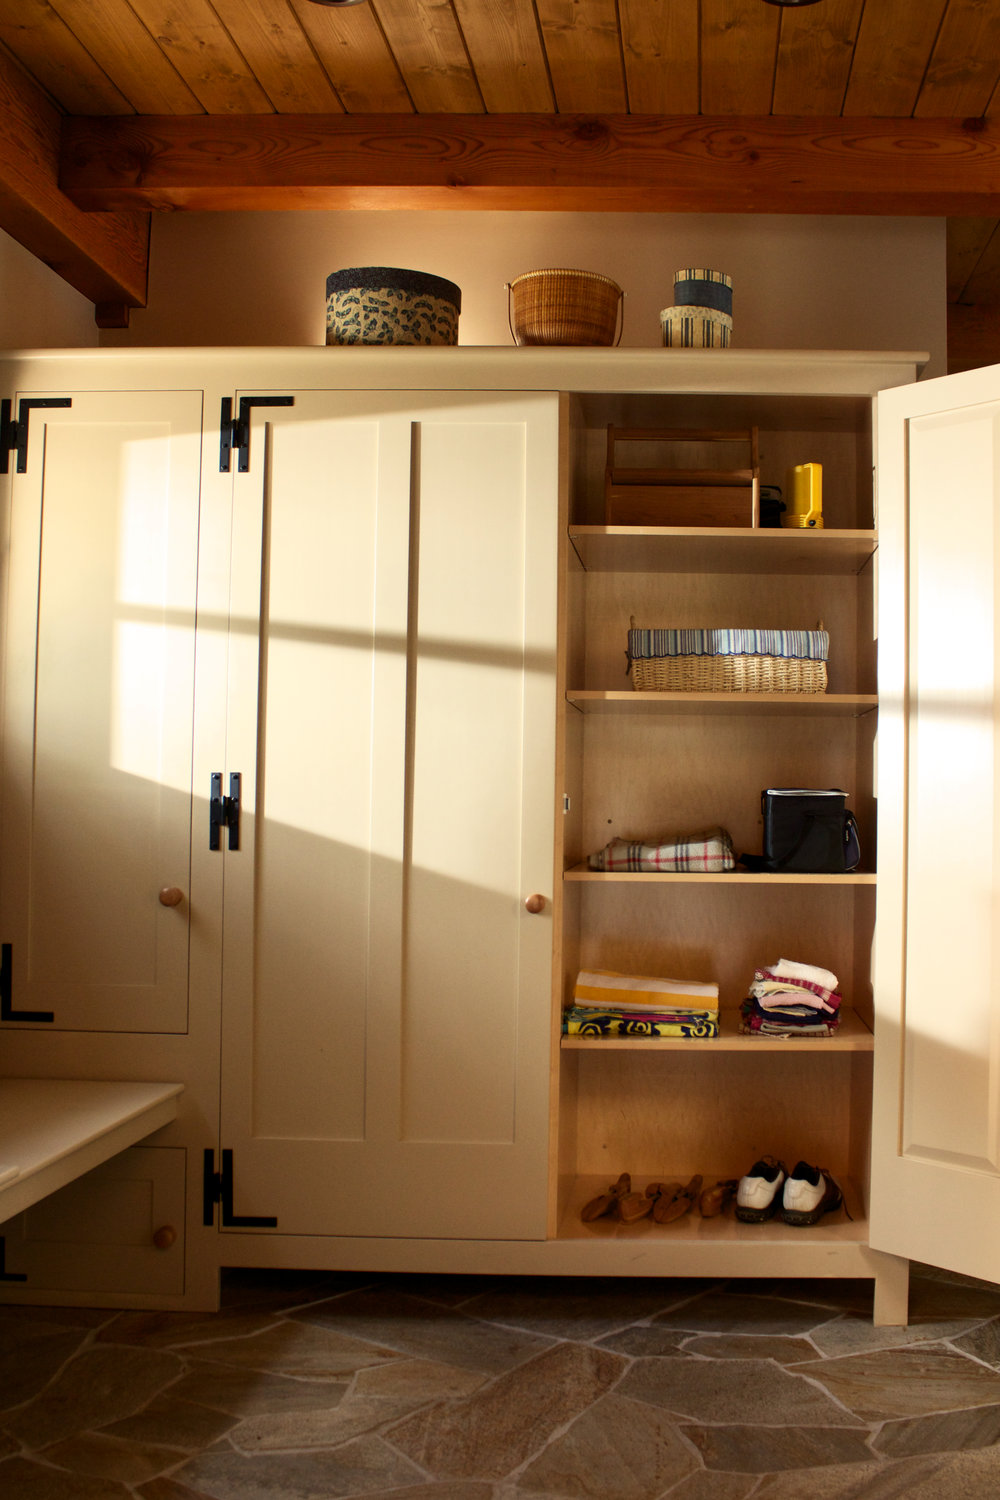 Farmhouse Mudroom with Recycle Center, Closets, Benches, and Hanging Pegs 7.jpg